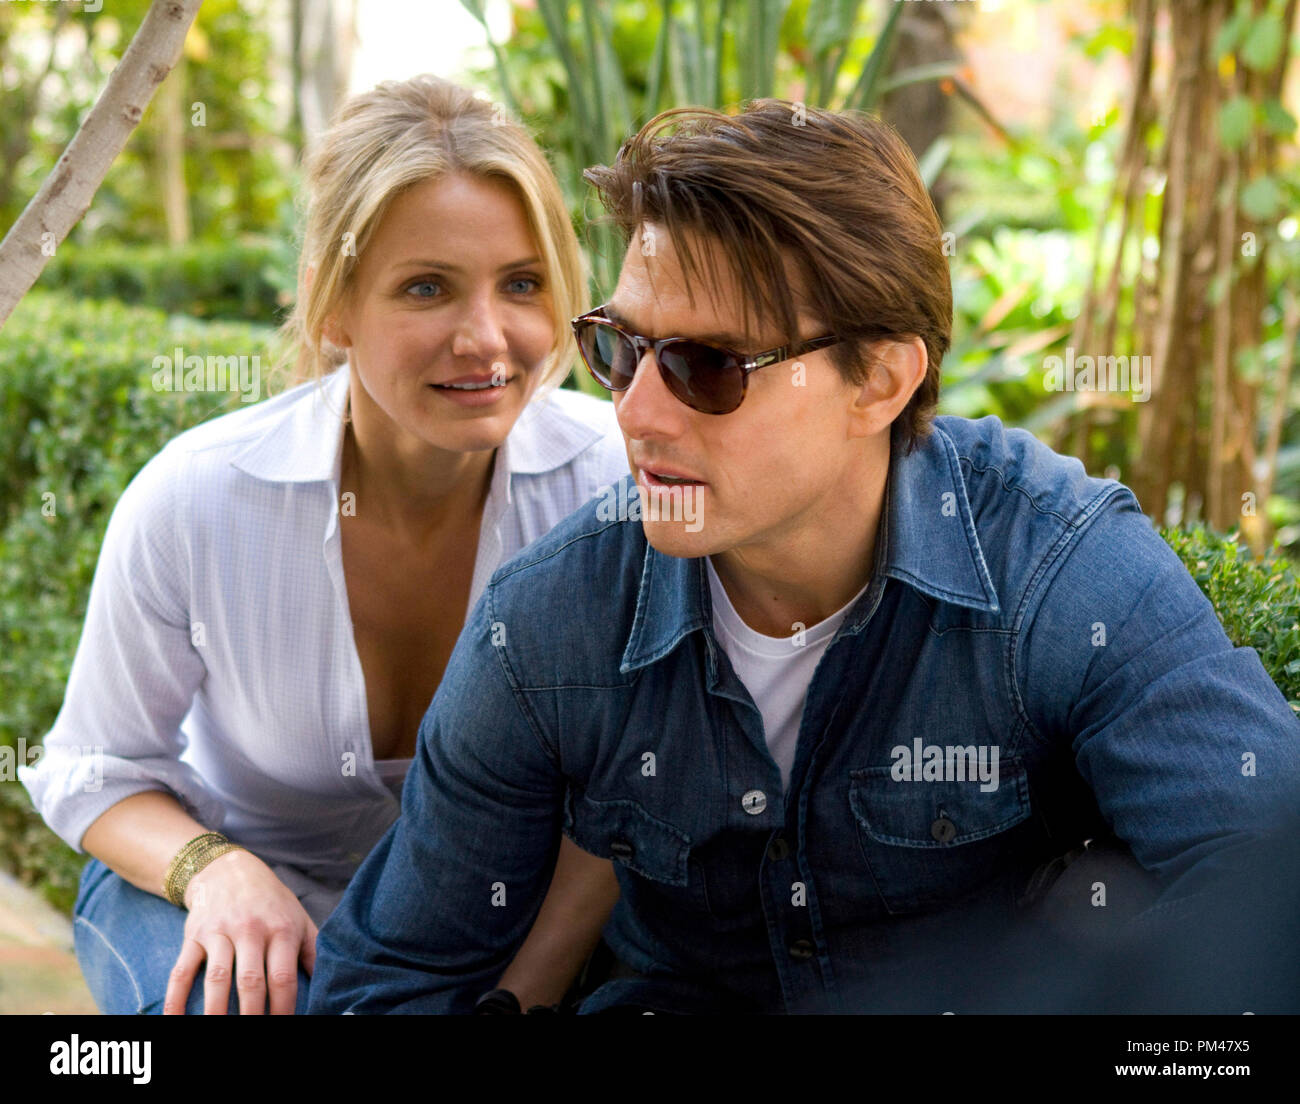 KNIGHT & DAY   June (Cameron Diaz) and Roy (Tom Cruise) aren't exactly in sync when they find themselves the targets of assassins.  Photo credit: Frank Masi  TM and © 2010 Twentieth Century Fox and Regency Enterprises.  All rights reserved. - Stock Image